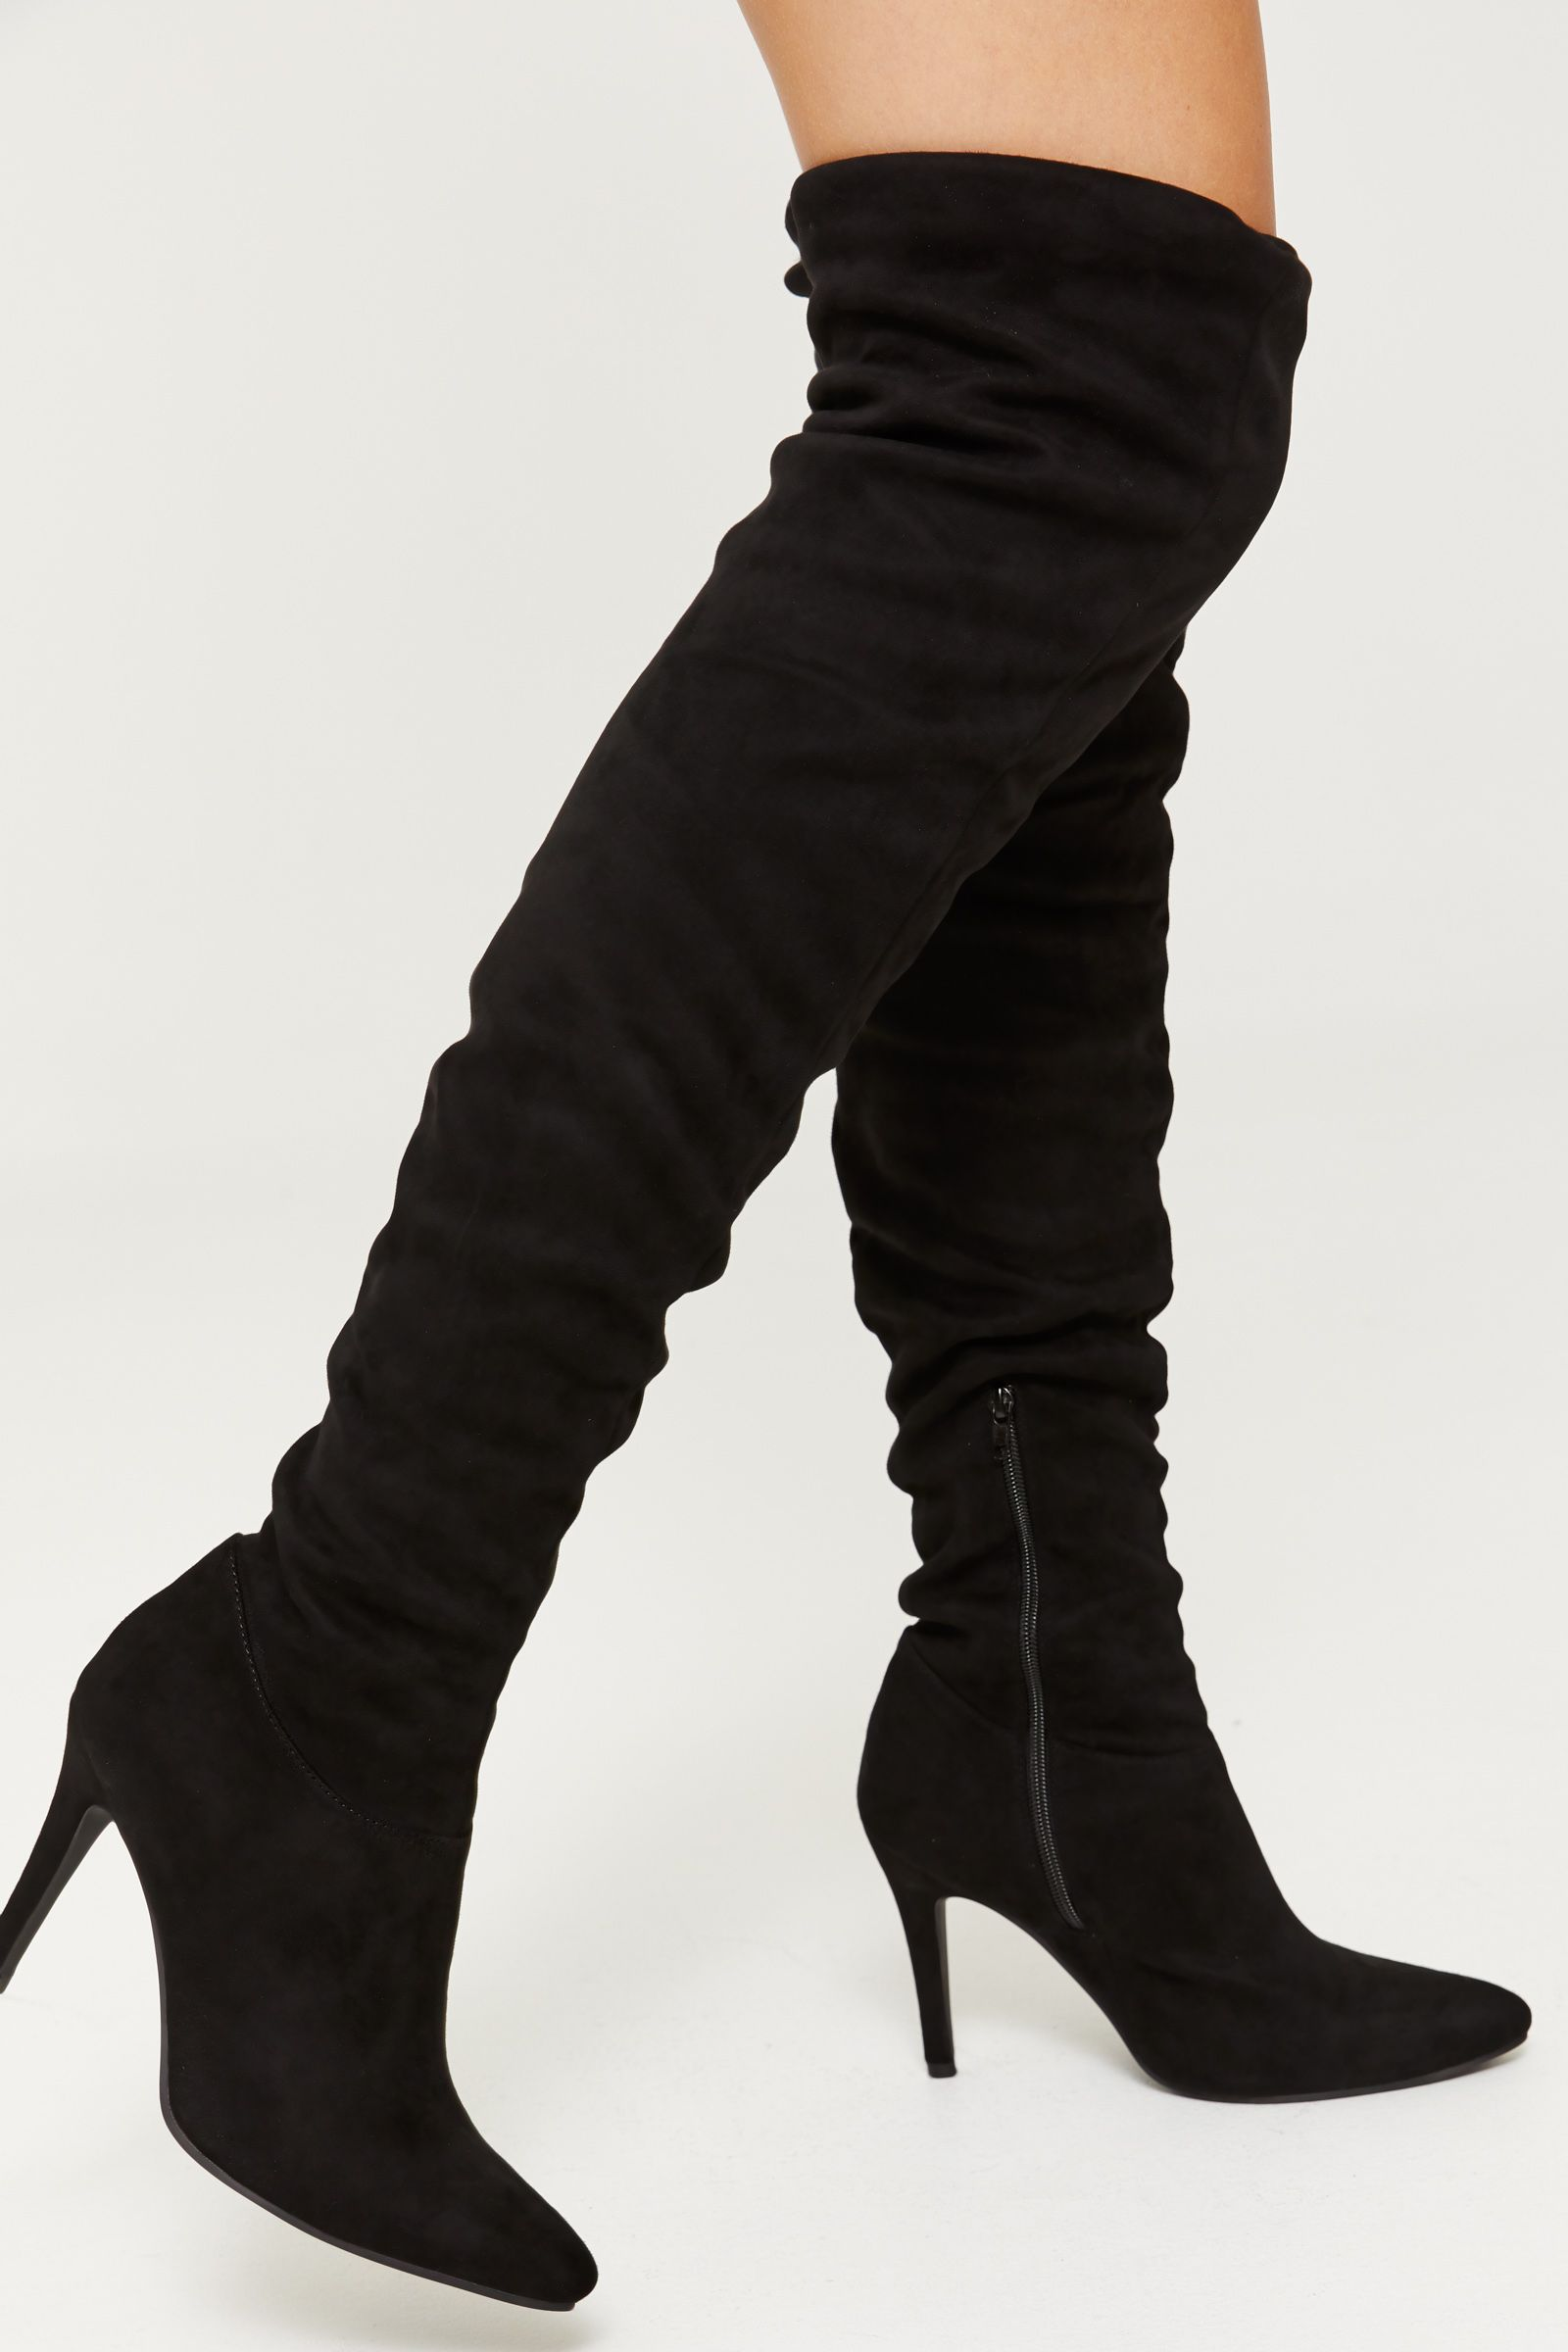 066f457947c35 Microsuede boots. Knee-high. Pointy toe. Short inside zipper ...